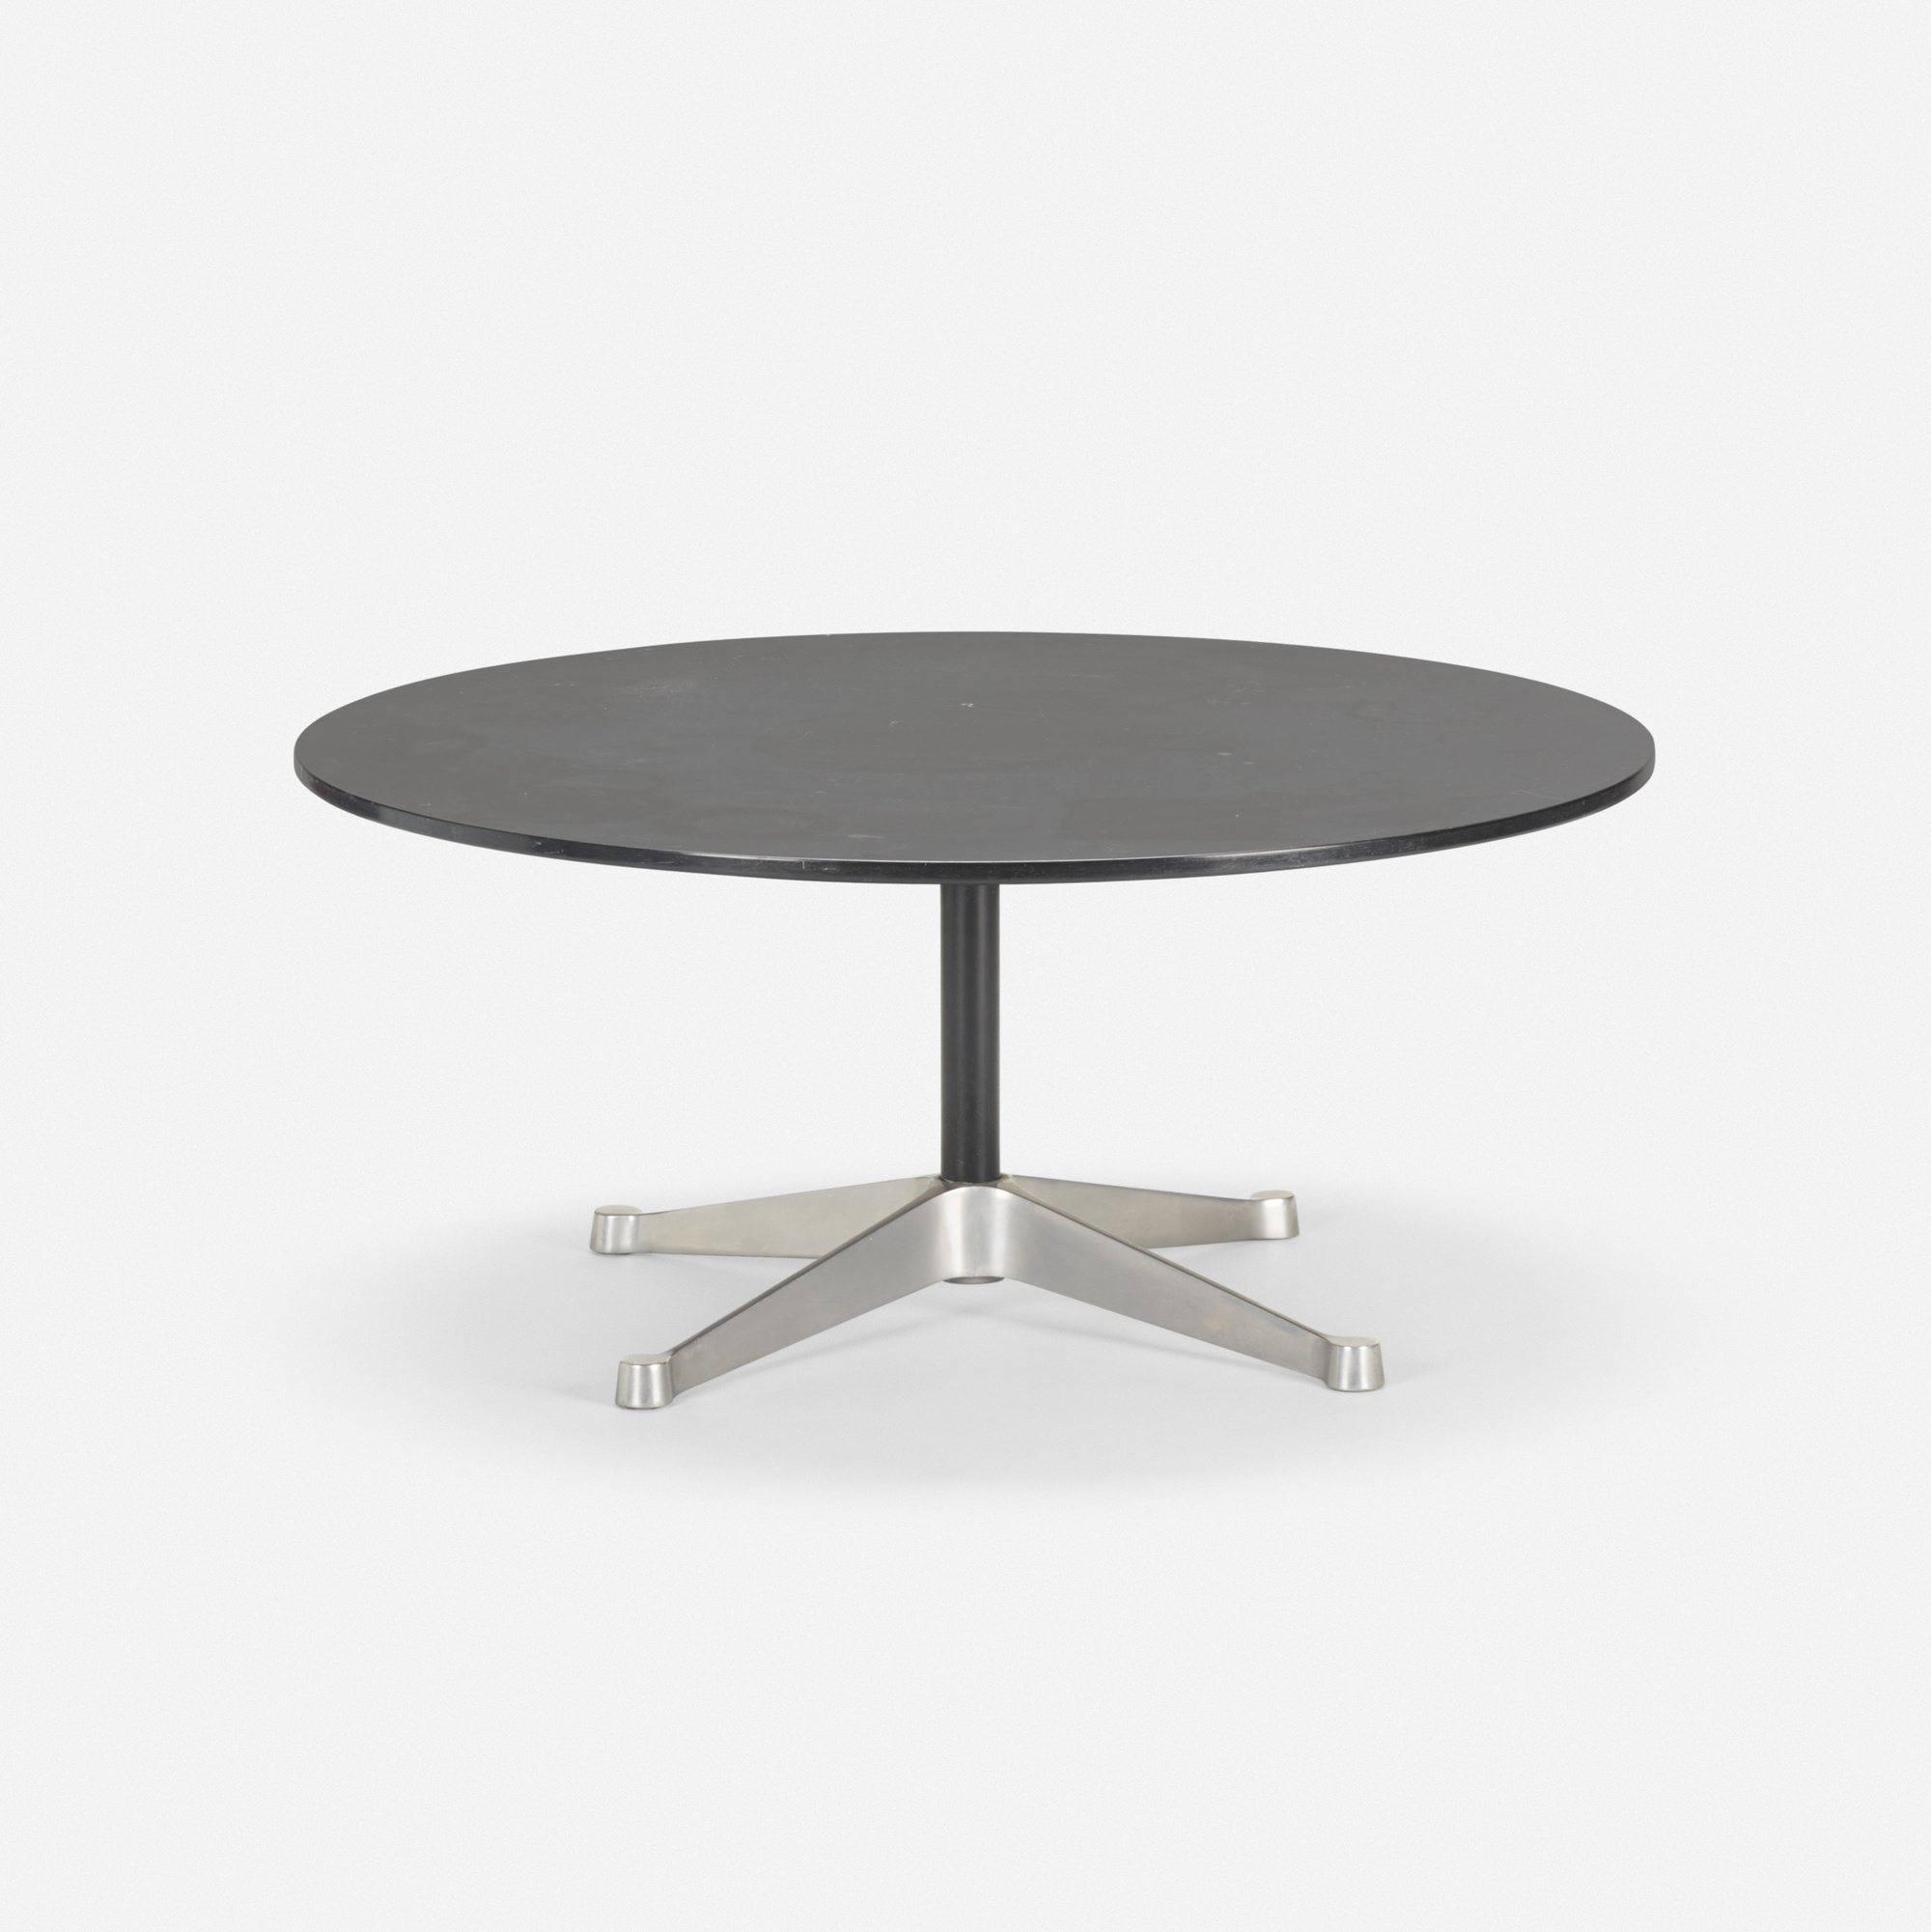 Eames Coffee Table Square: 315: CHARLES AND RAY EAMES, Pre-production Aluminum Group